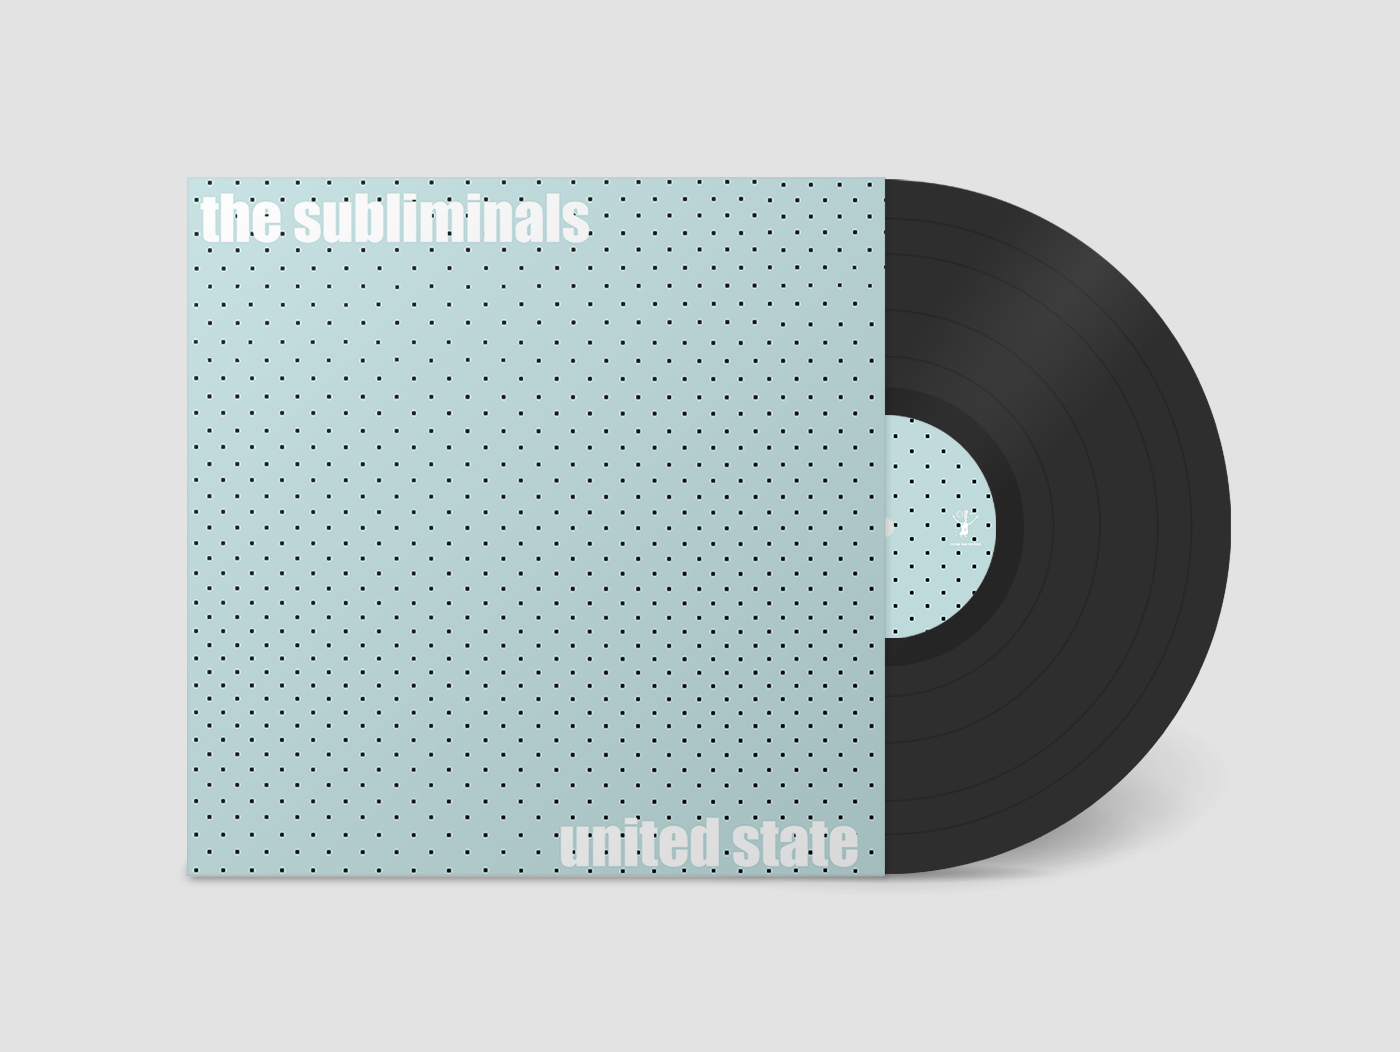 Subliminals, The - United State (2020 Anniversary Reissue)